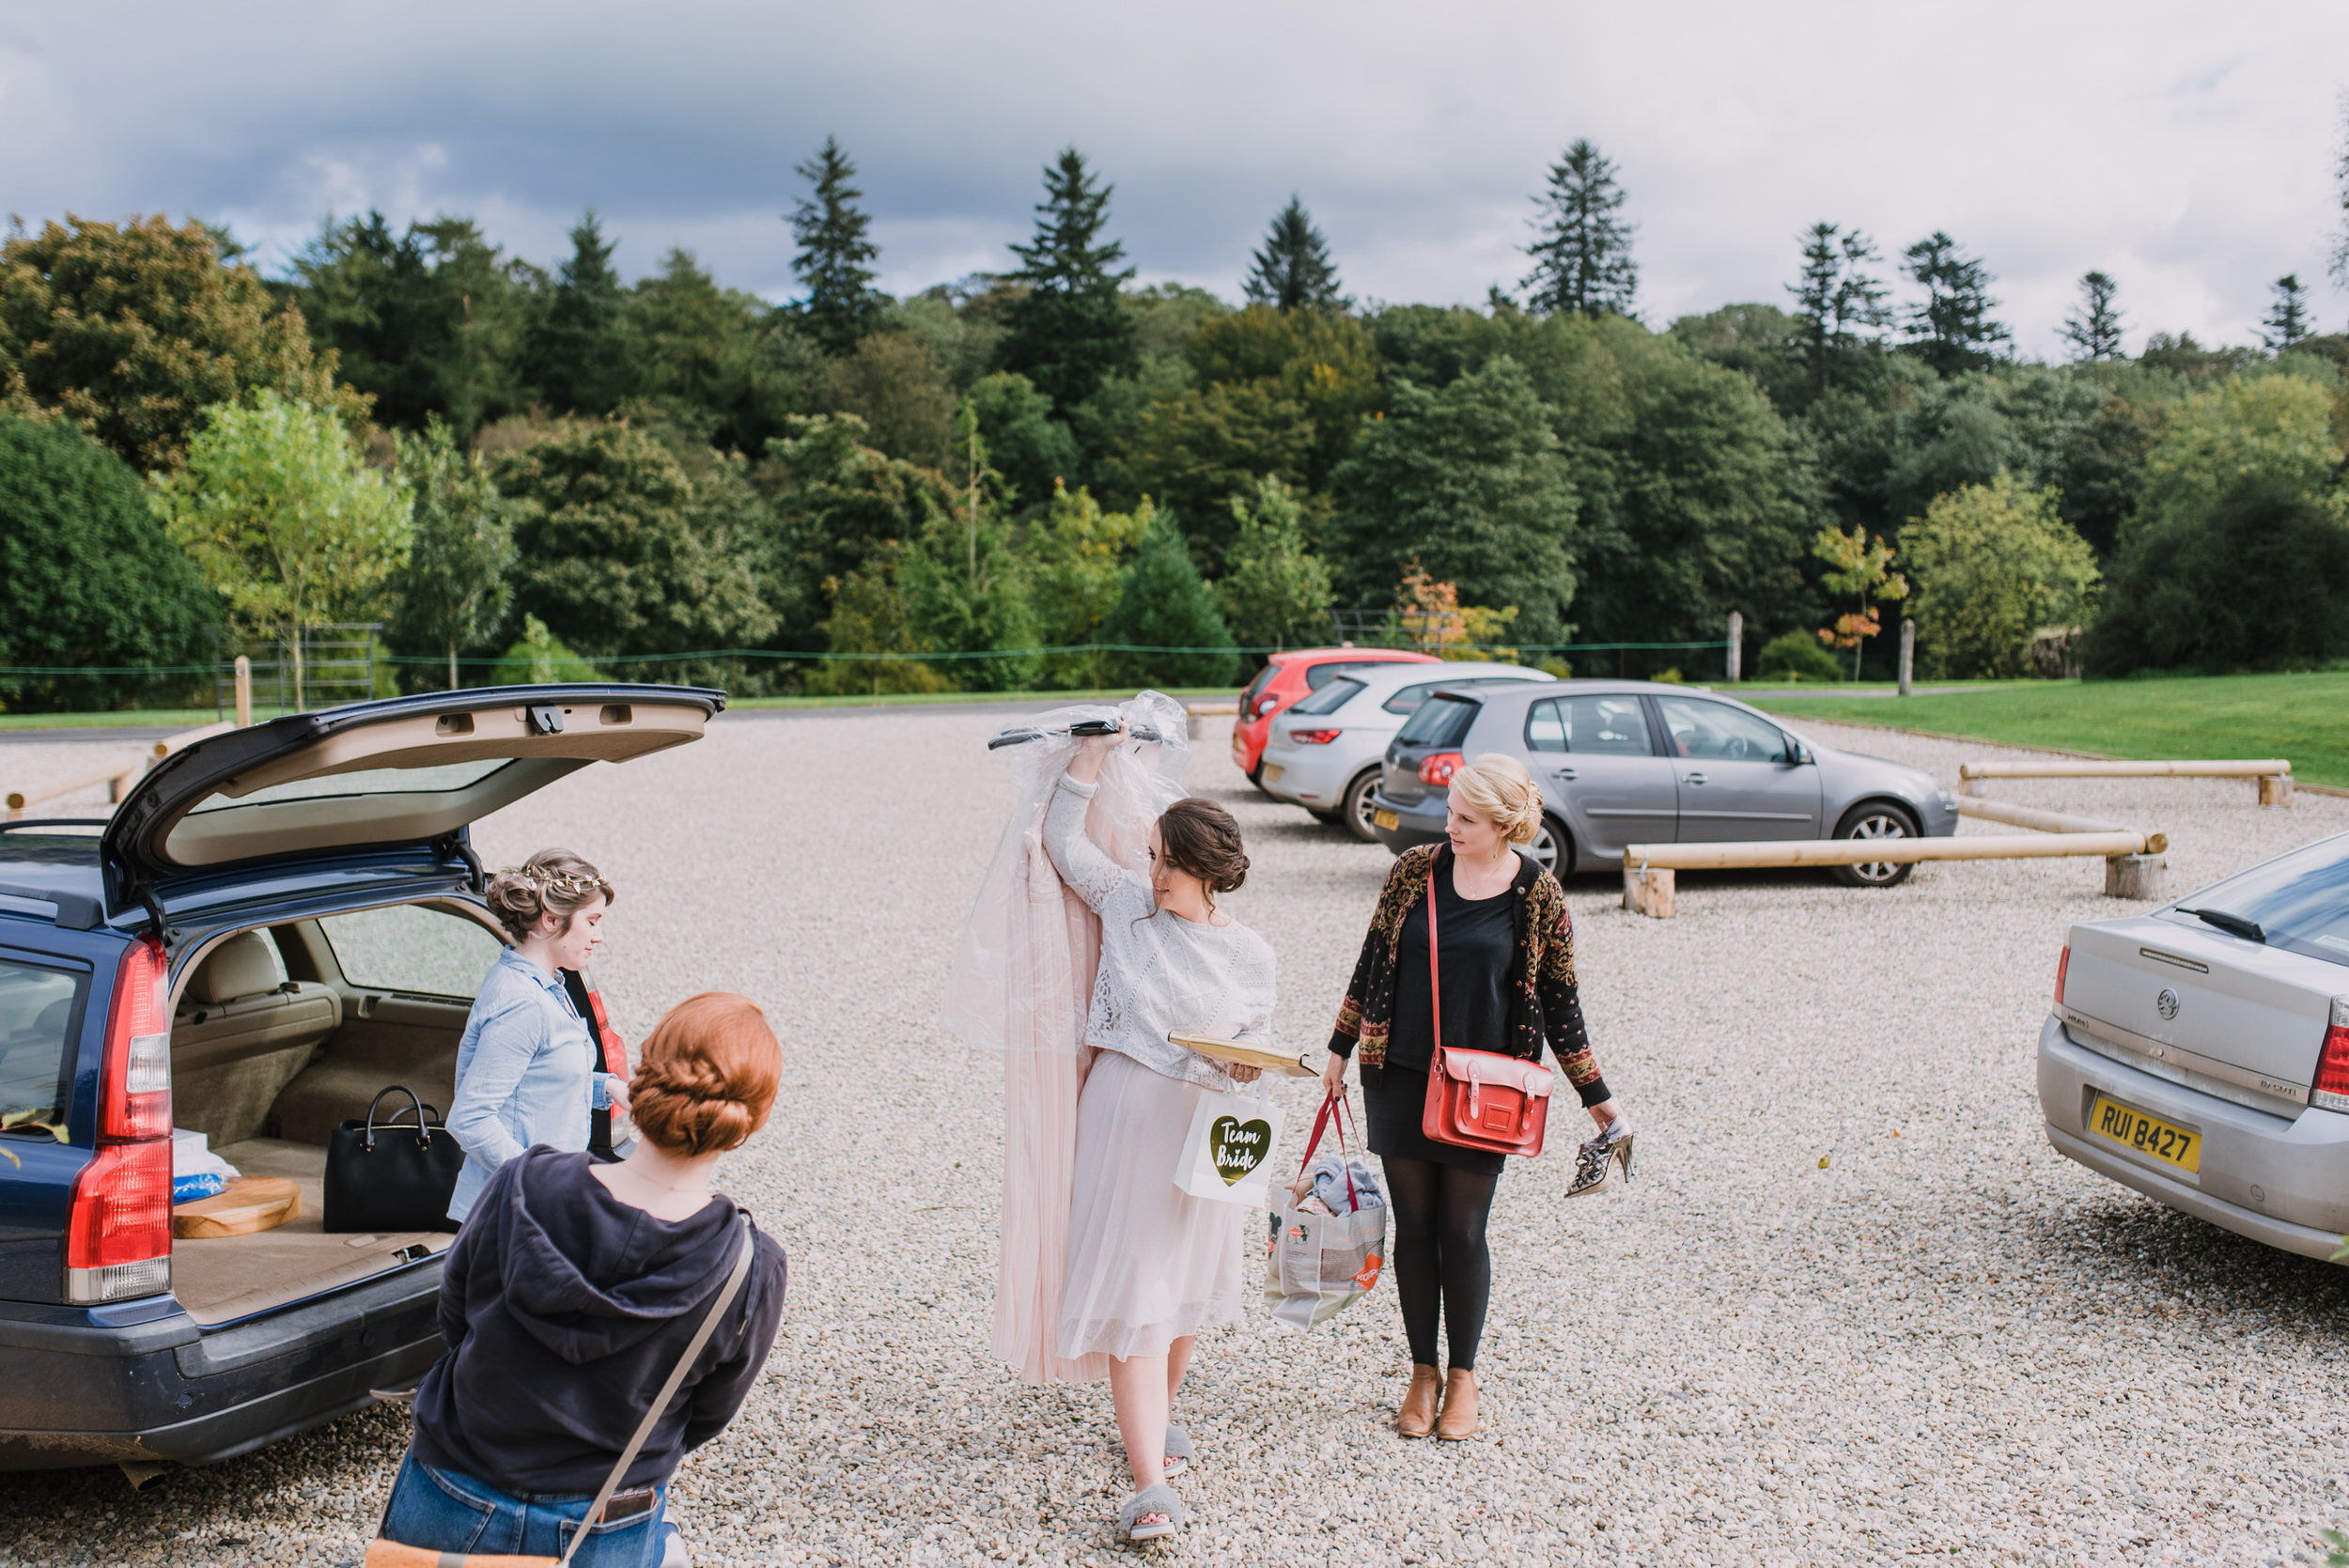 lissanoure castle wedding, northern ireland wedding photographer, romantic northern irish wedding venue, castle wedding ireland, natural wedding photography ni (19).jpg